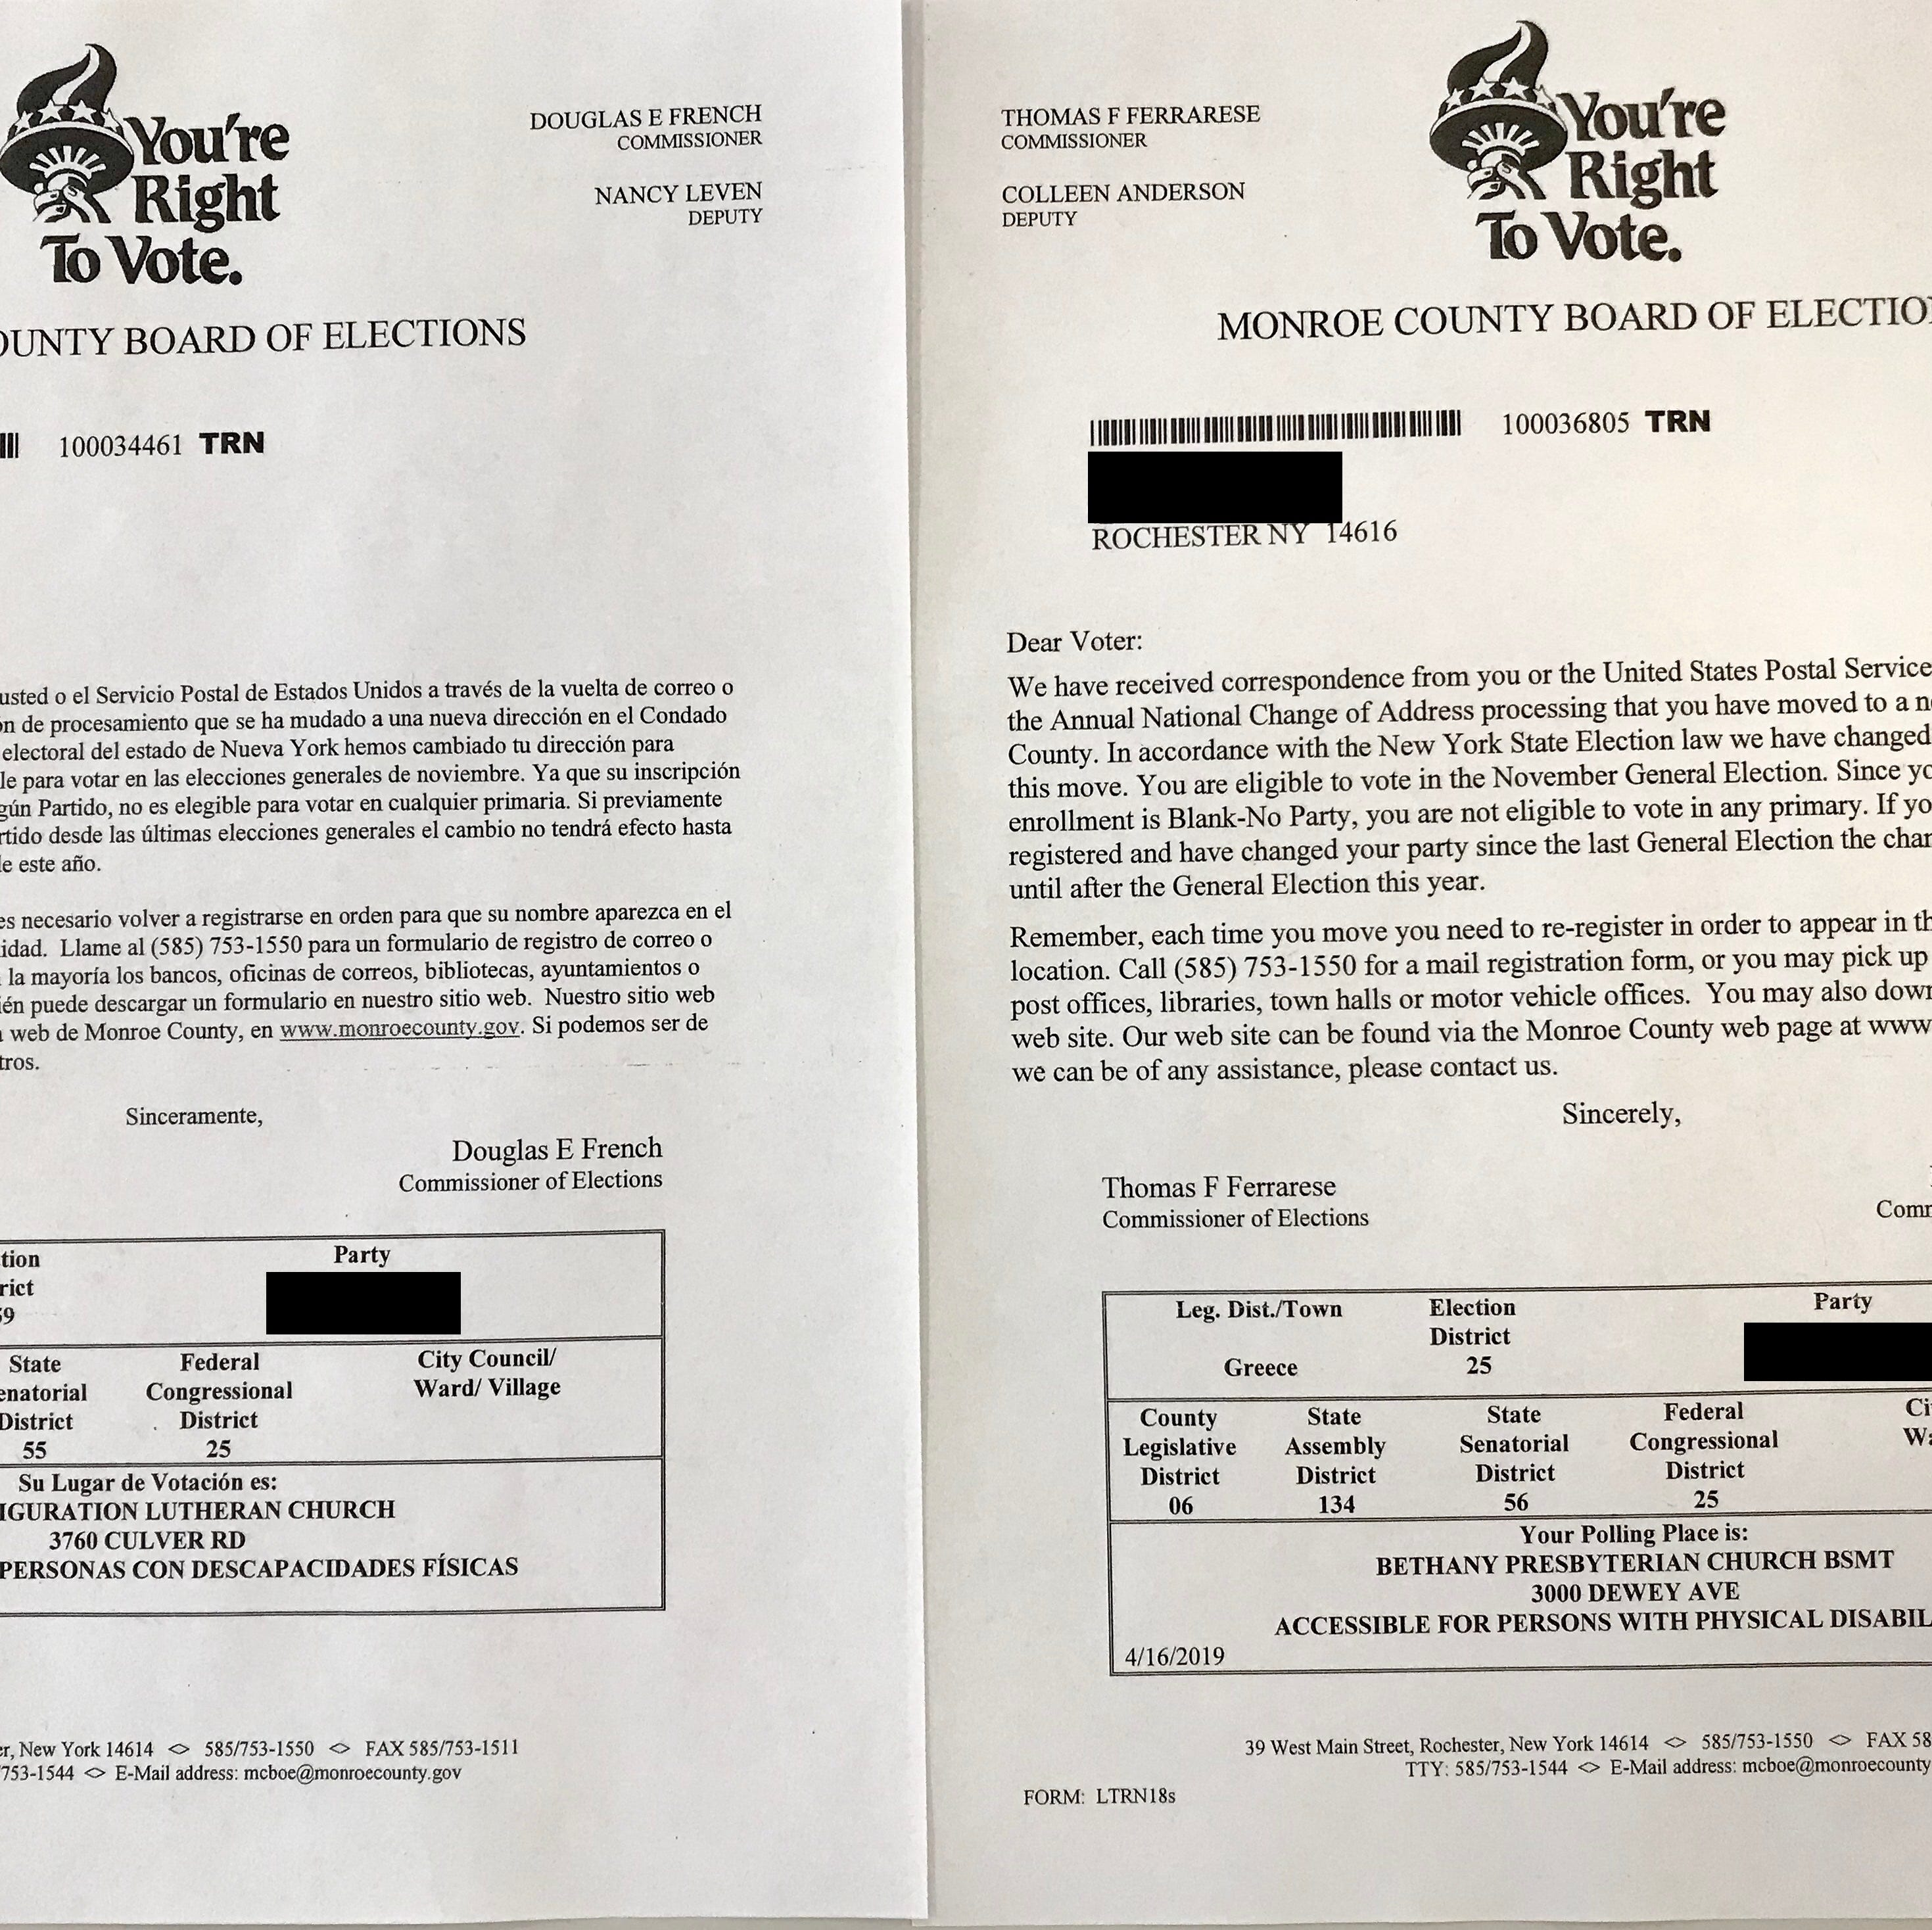 Monroe County Board of Elections snafu sparks odd housewarming gift to 126 voters